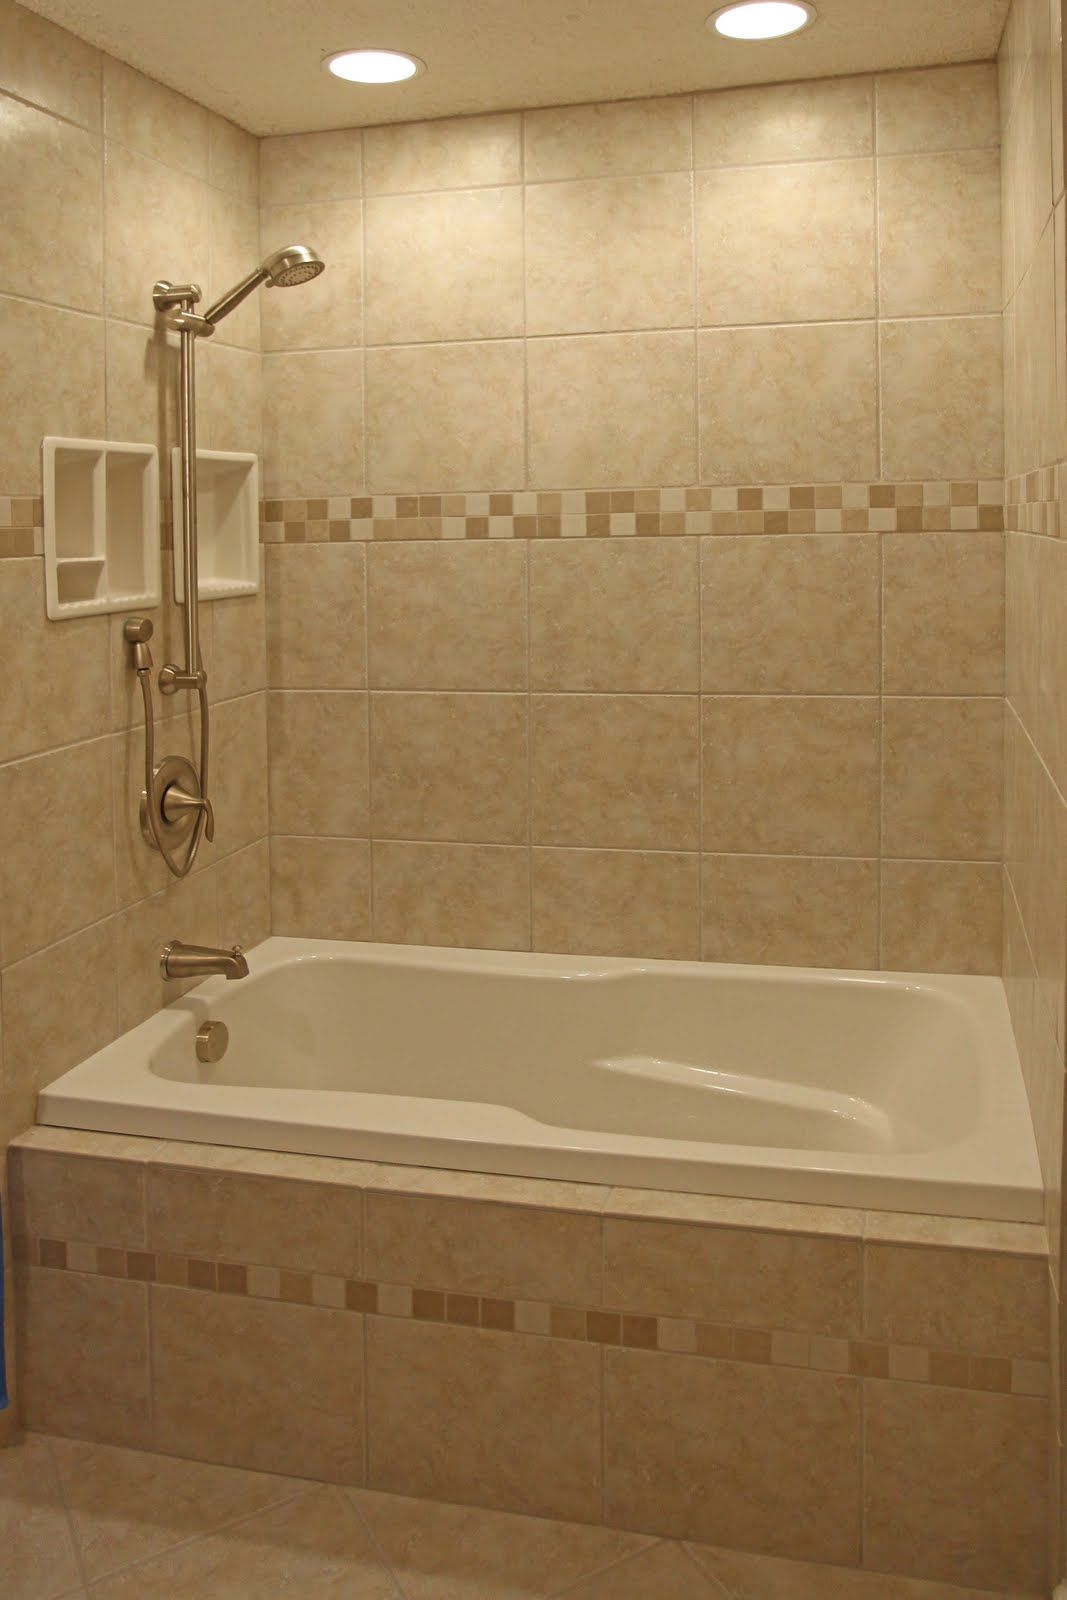 Remodel Bathroom Tub To Shower shower and bath remodel | bathroom shower design ideas » ceramic